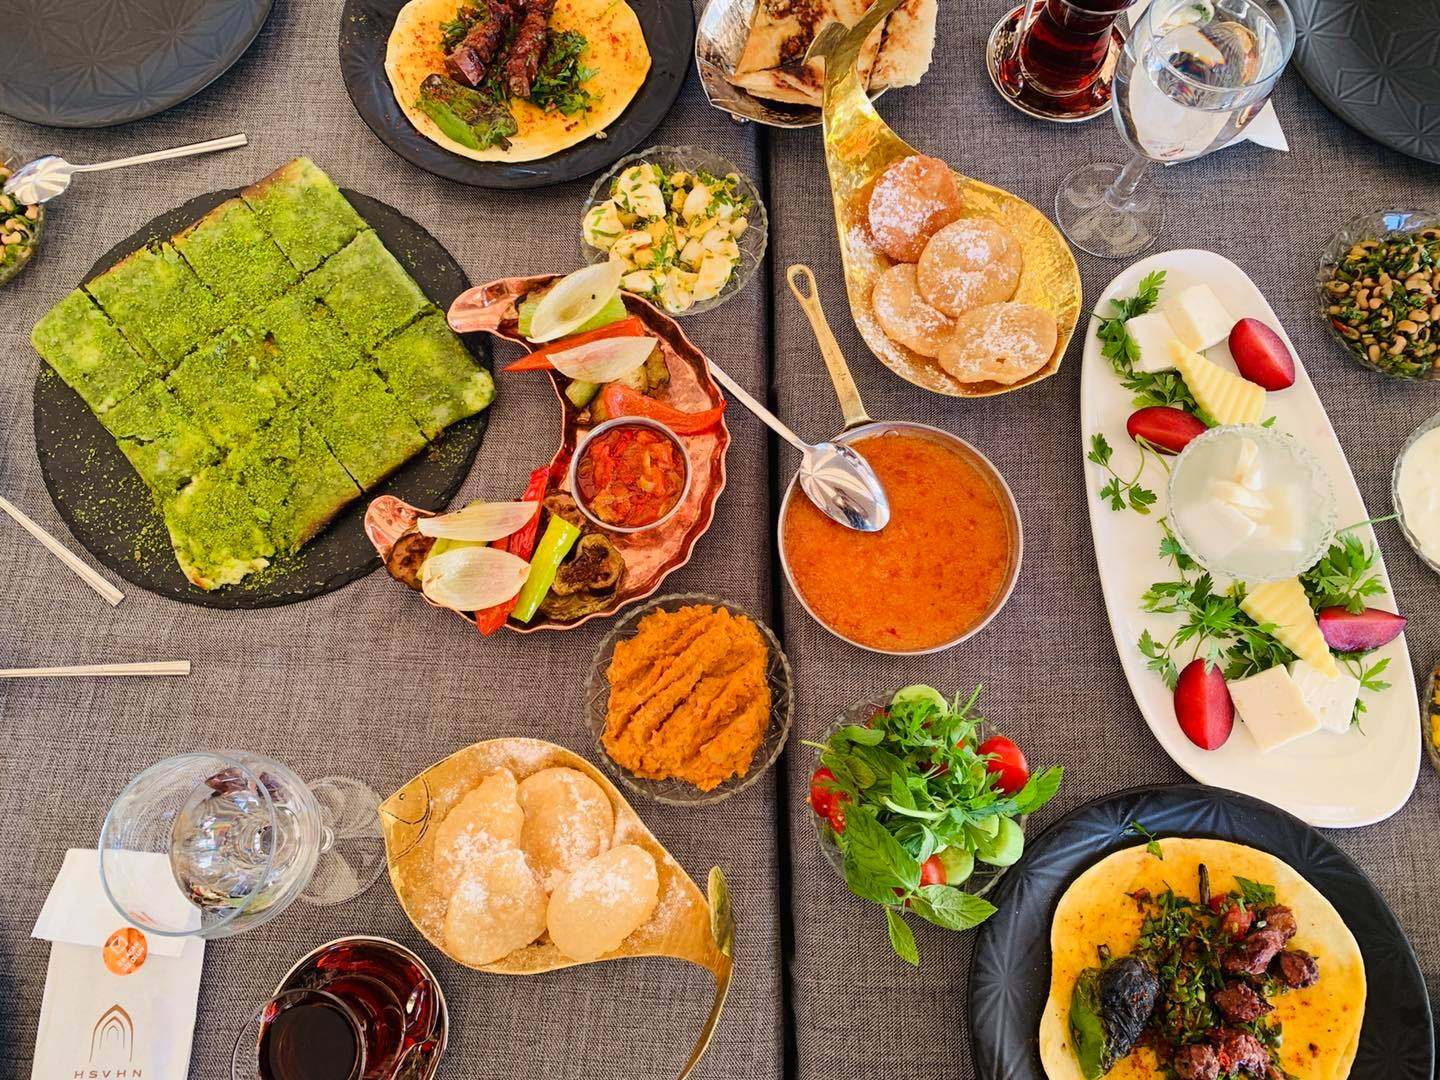 GastroAntep 2020 Introduction to Gaziantep's Annual Gastronomy Festival